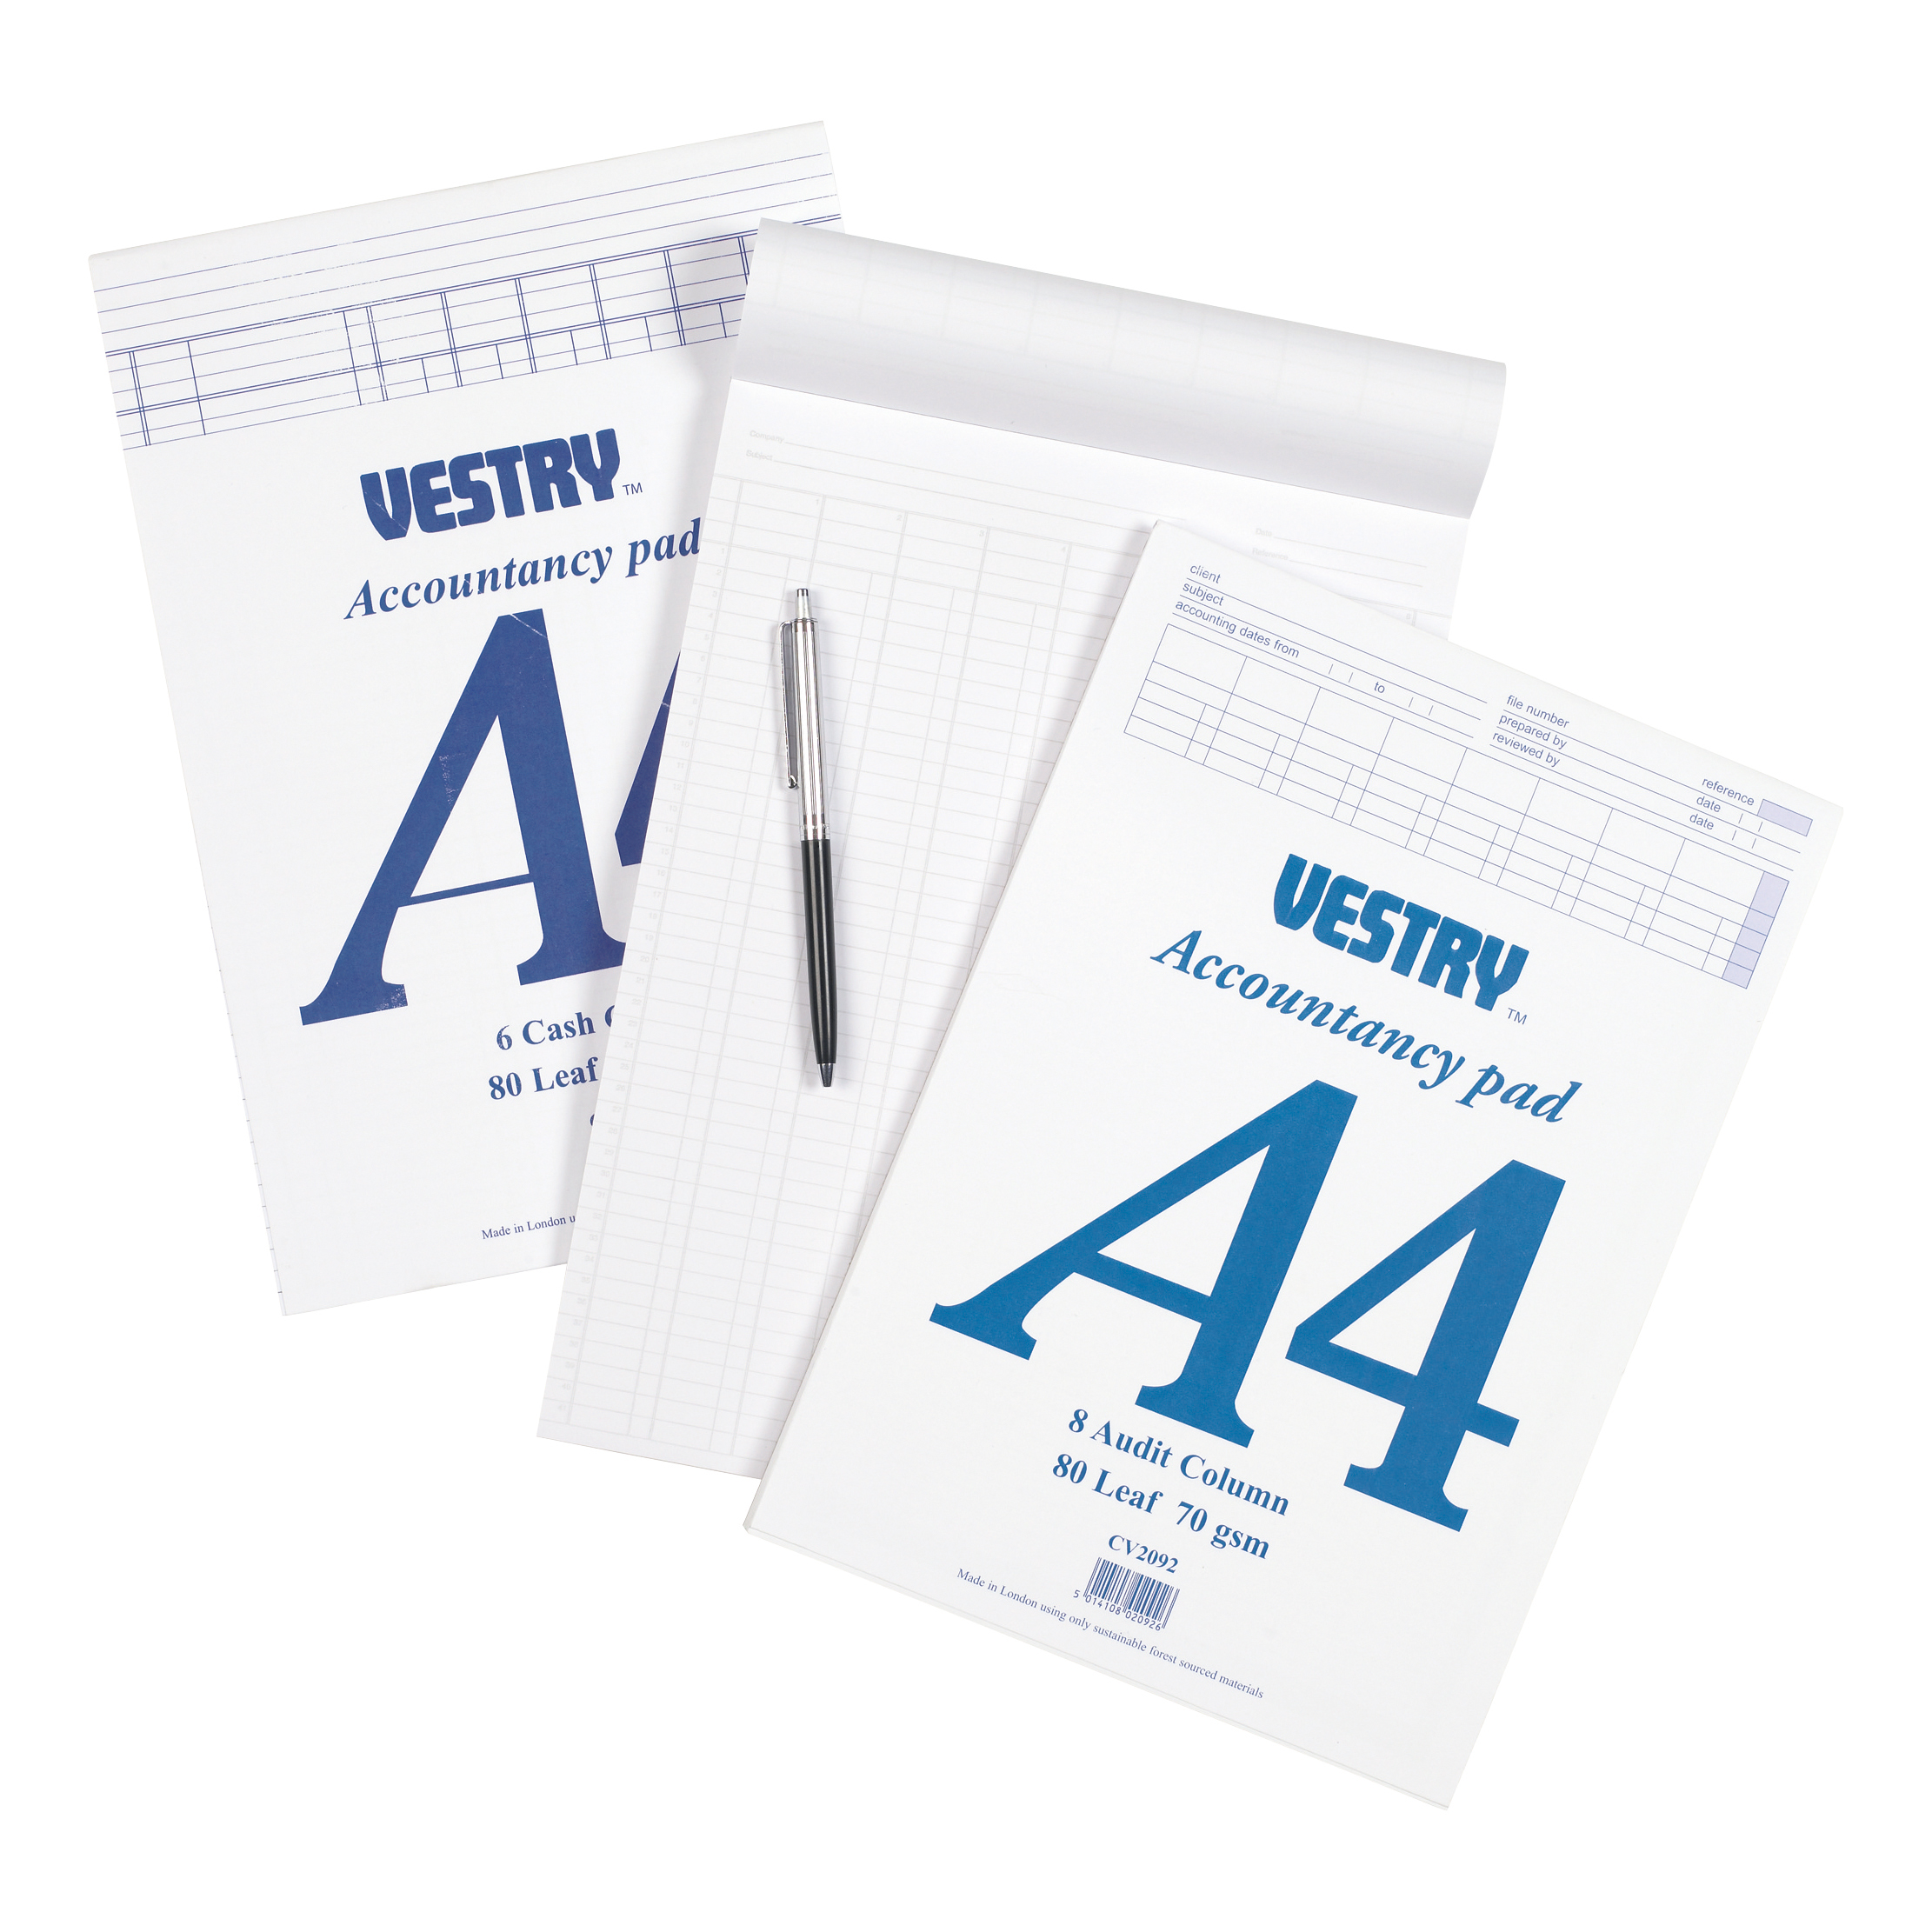 Vestry Accountants Pad 8 Cash Column 80 Leaf A4 Ref CV2064